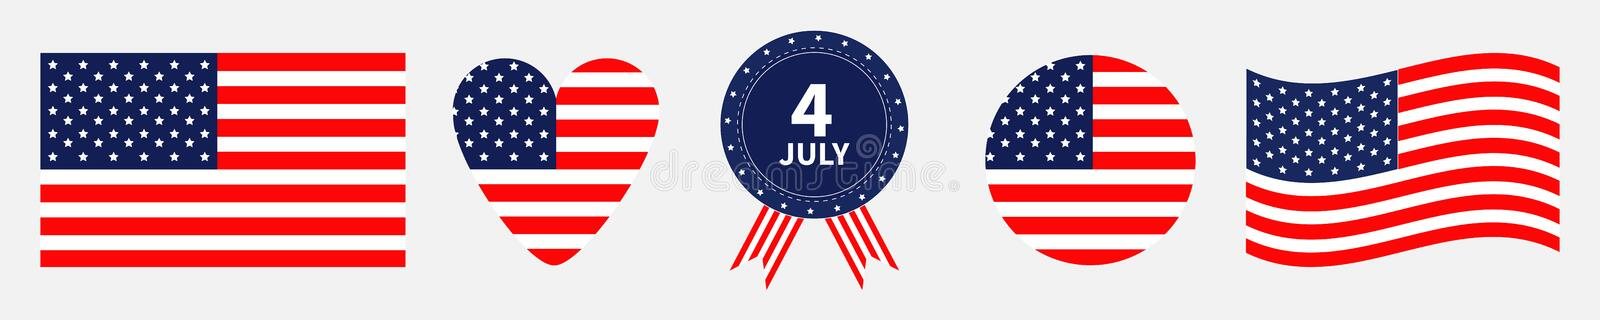 Happy independence day icon set line. United states of America. 4th of July. Waving american flag, heart, round shape, badge with stock illustration